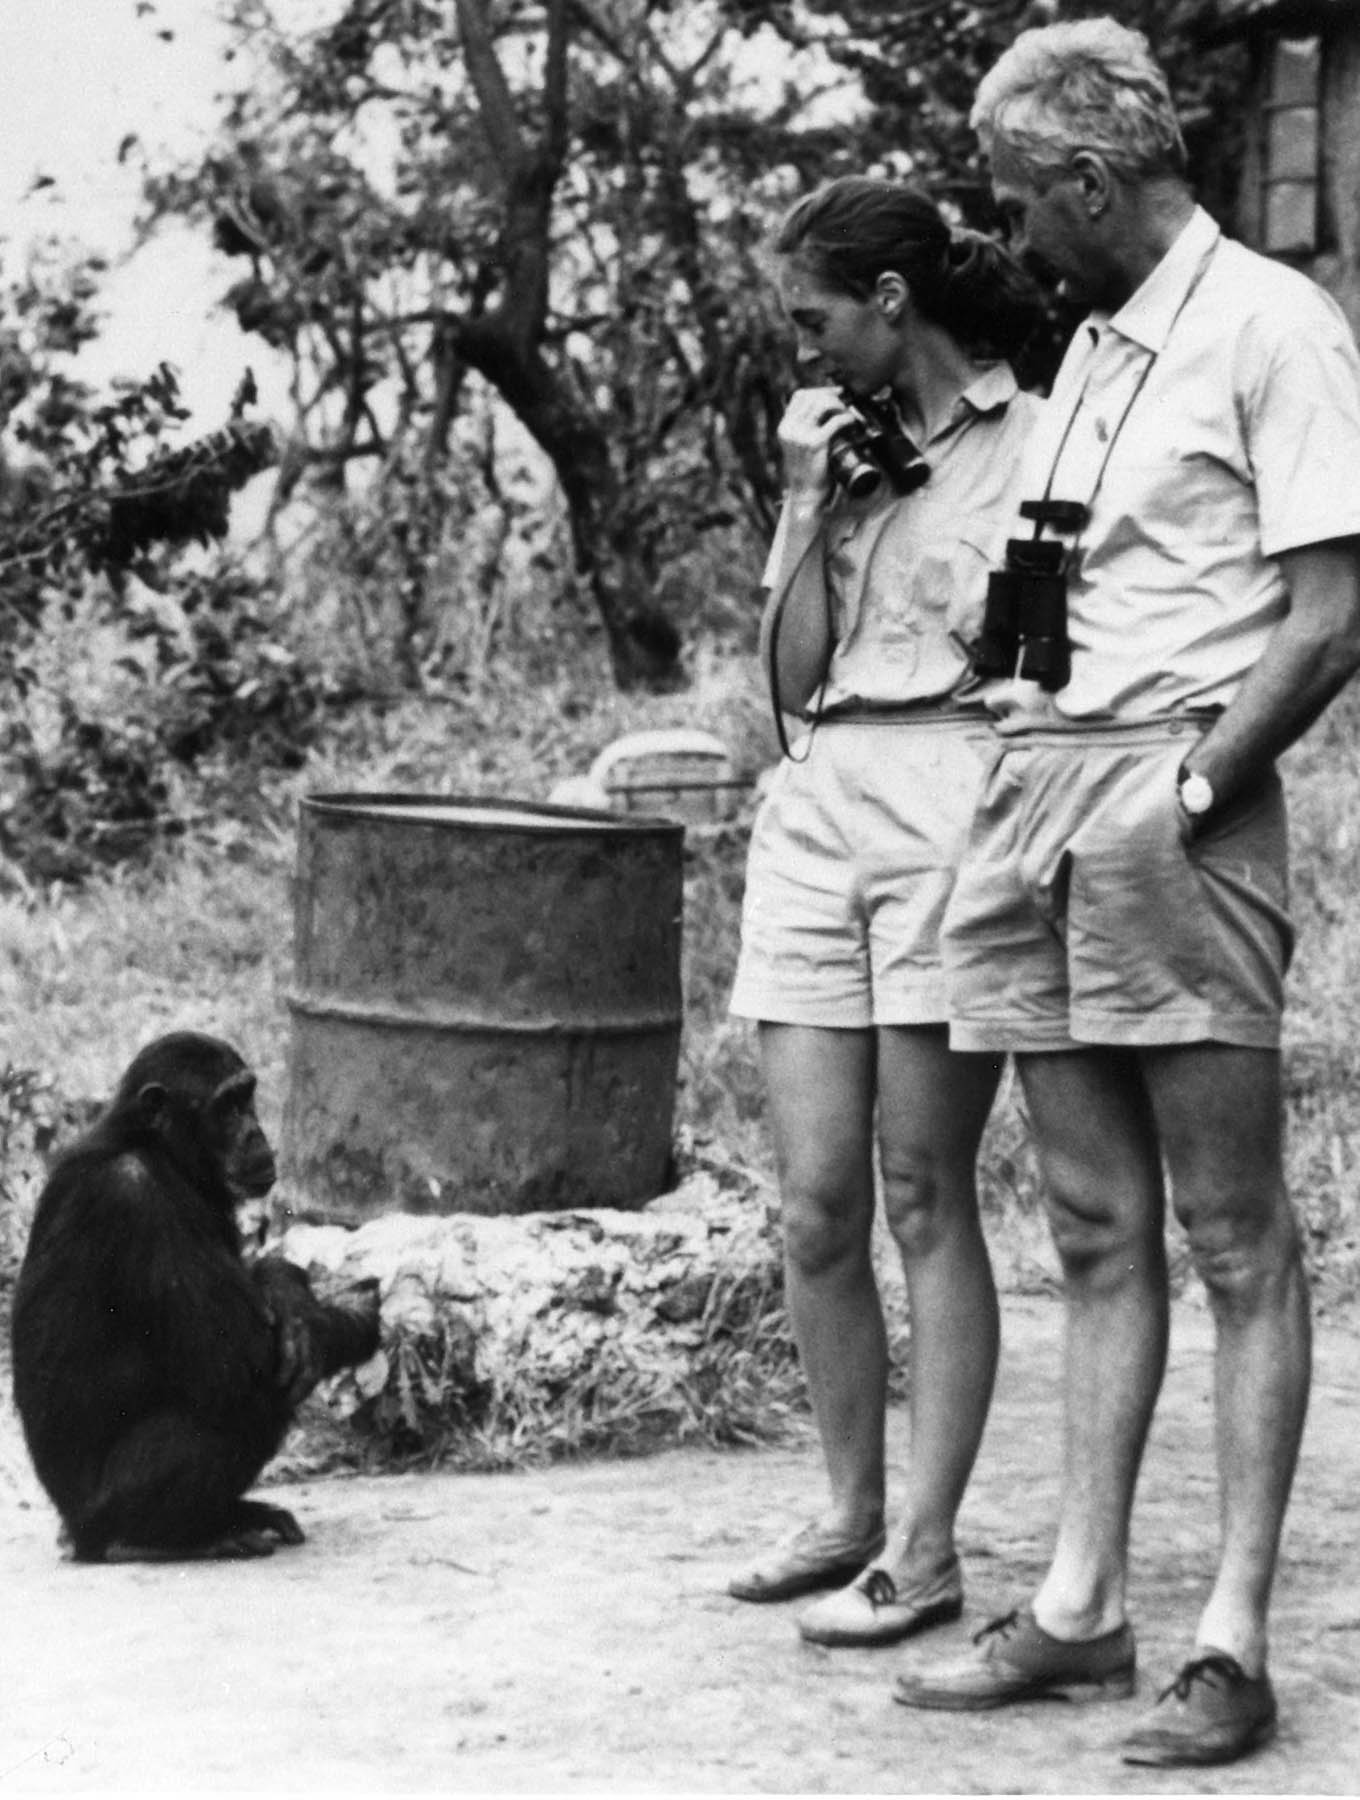 Melissa, Jane Goodall and Robert Hinde in Gombe Stream Wildlife Preserve